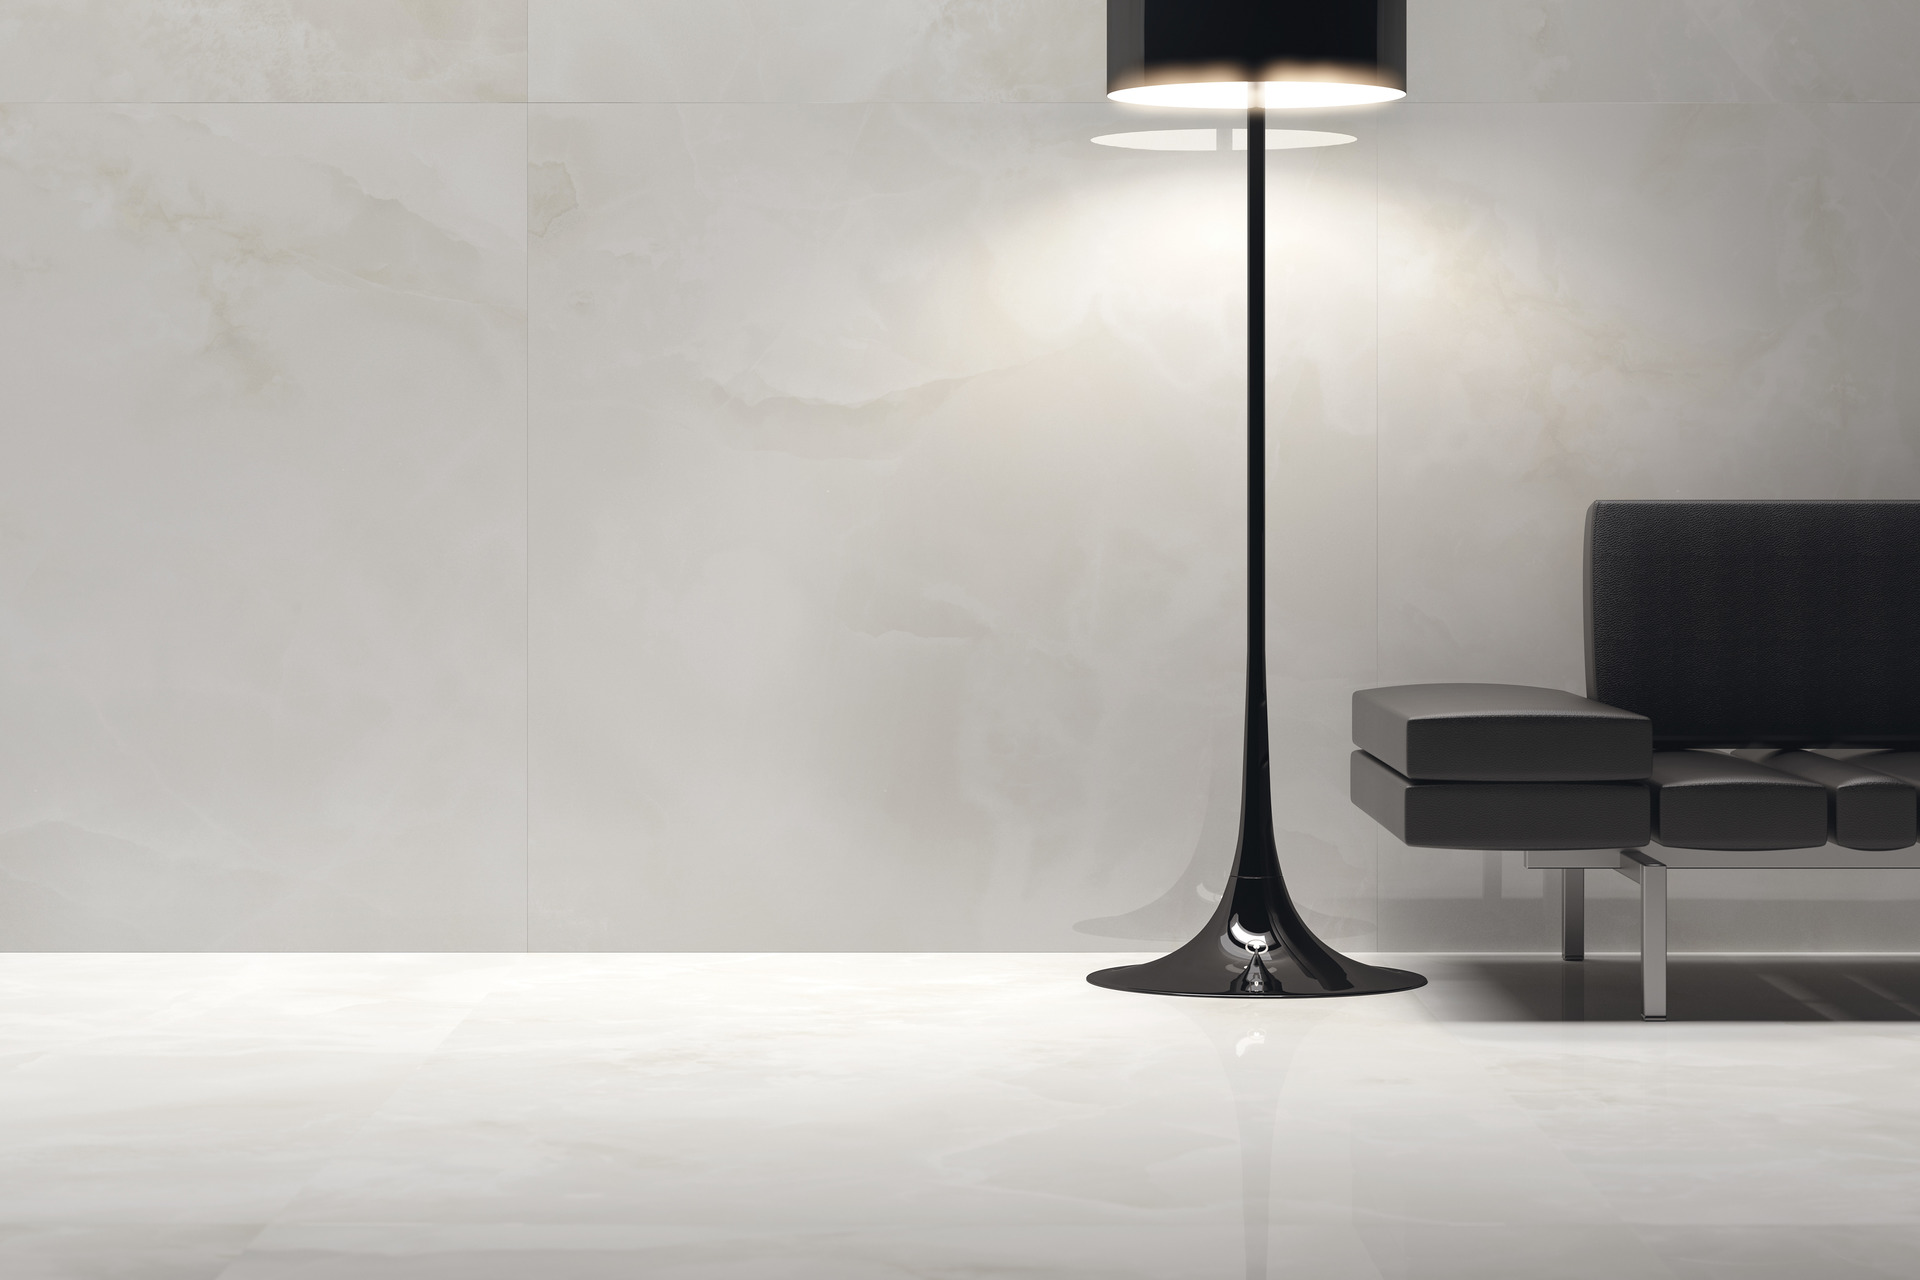 Marble Effect Porcelain Tiles - Ultra Onici